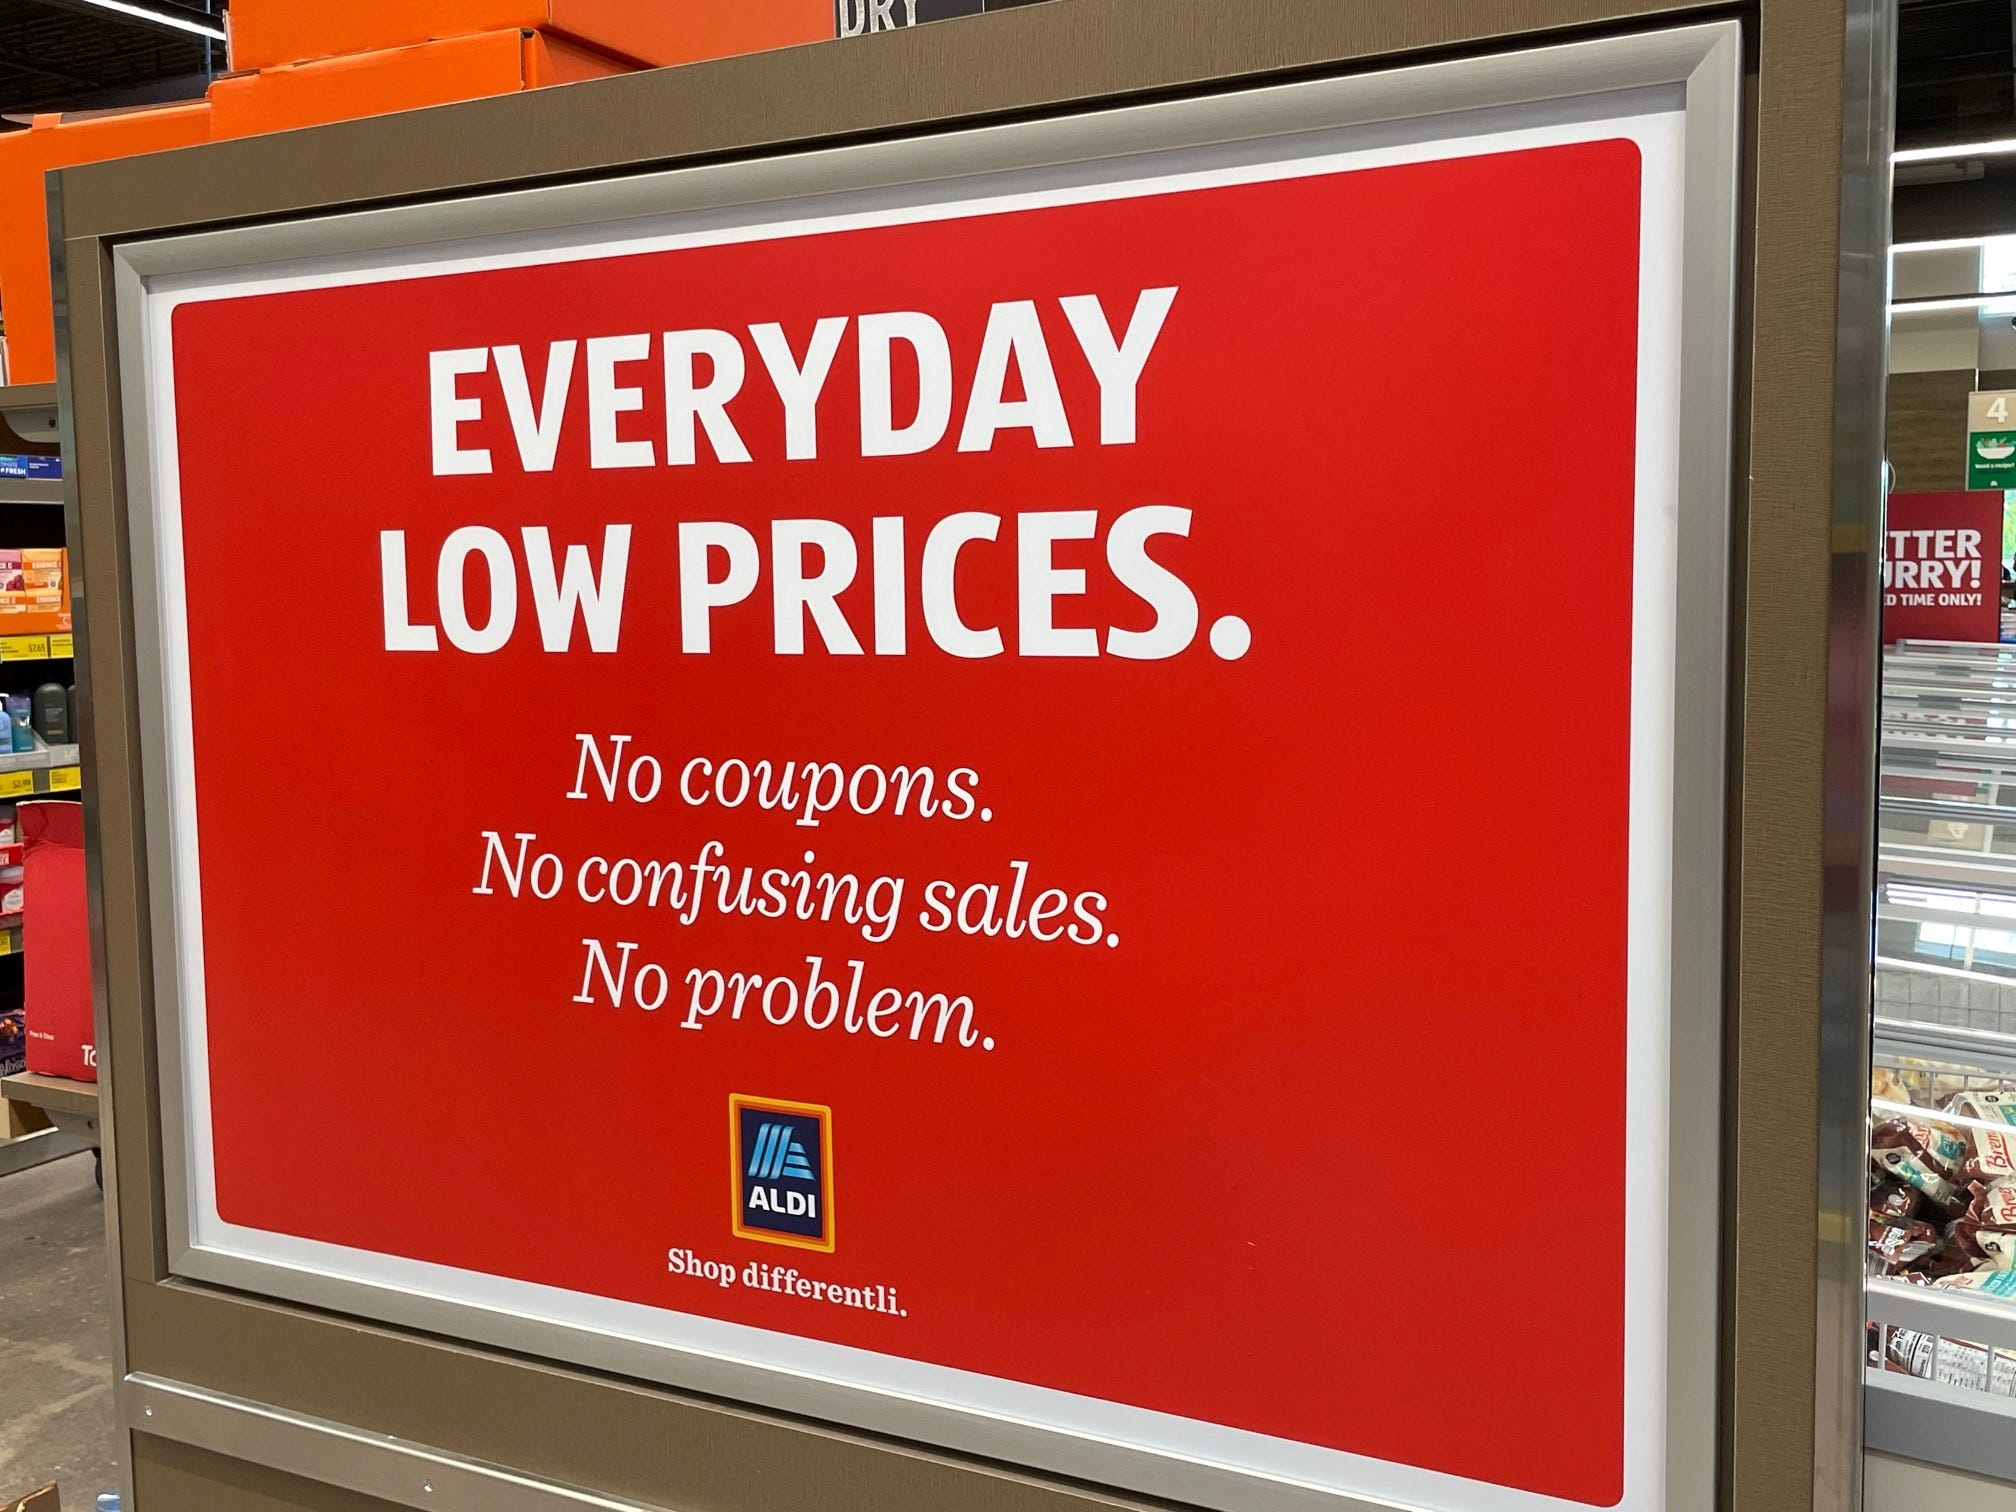 Aldi doesn't accept coupons.